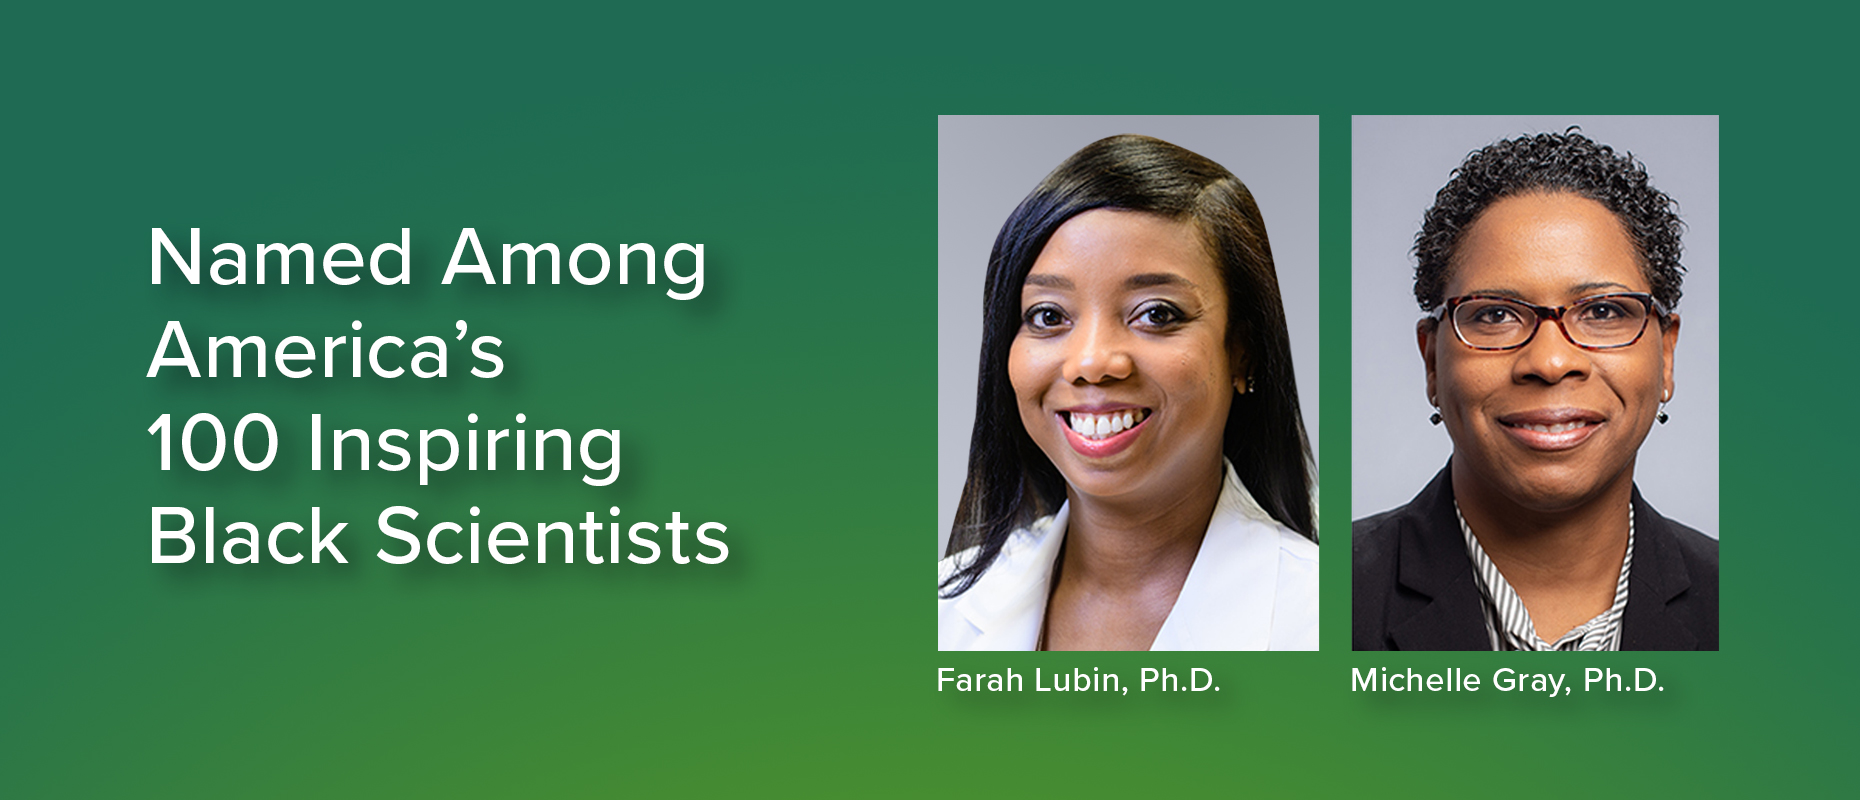 Named among America's 100 Inspiring Black Scientists: Farah Lubin, Ph.D. and Michelle Gray, Ph.D.